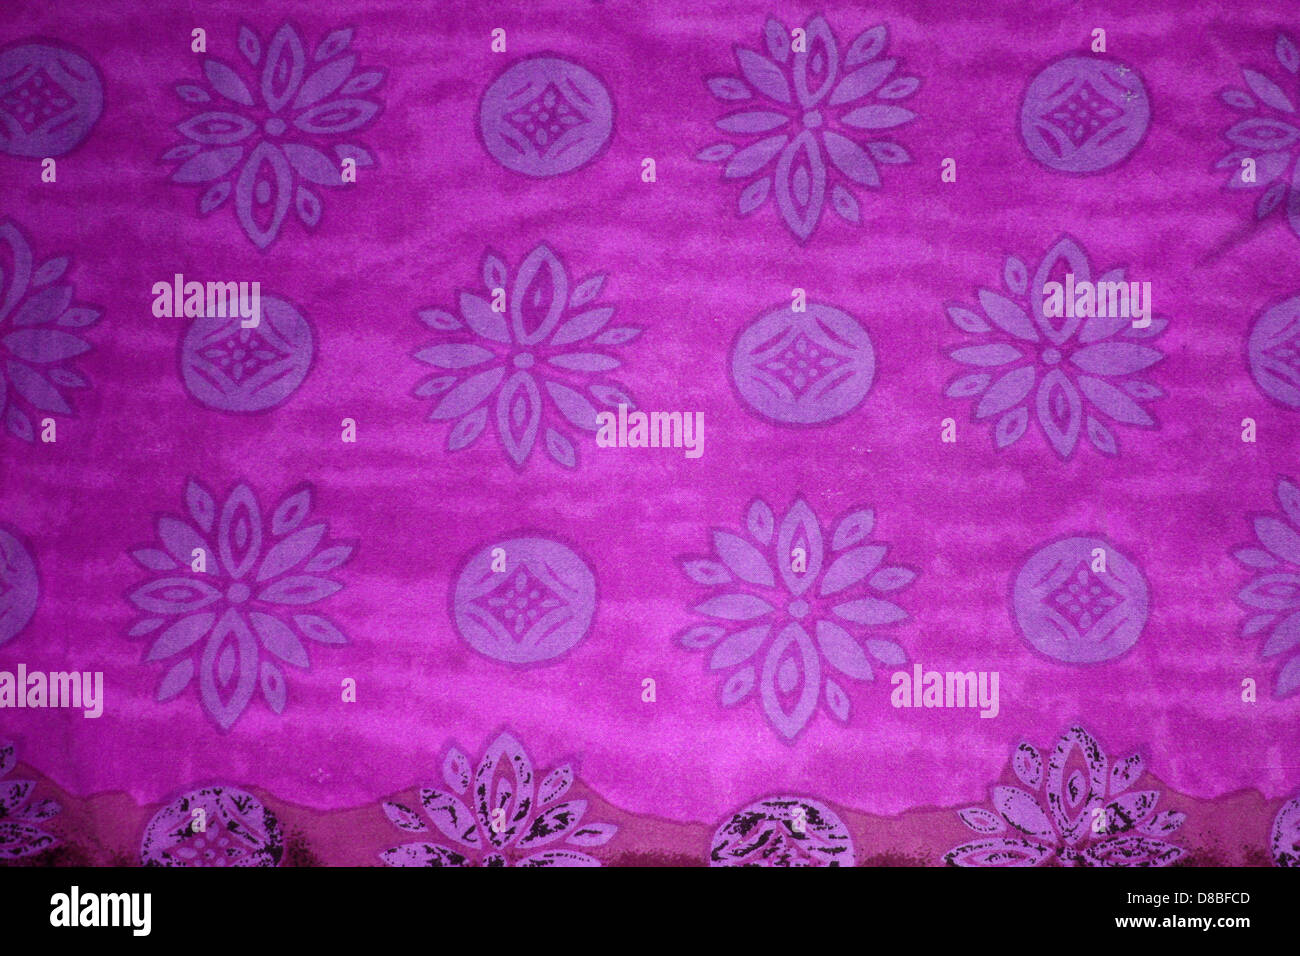 Hot Pink Fabric Texture With Purple Flowers And Circles Stock Photo